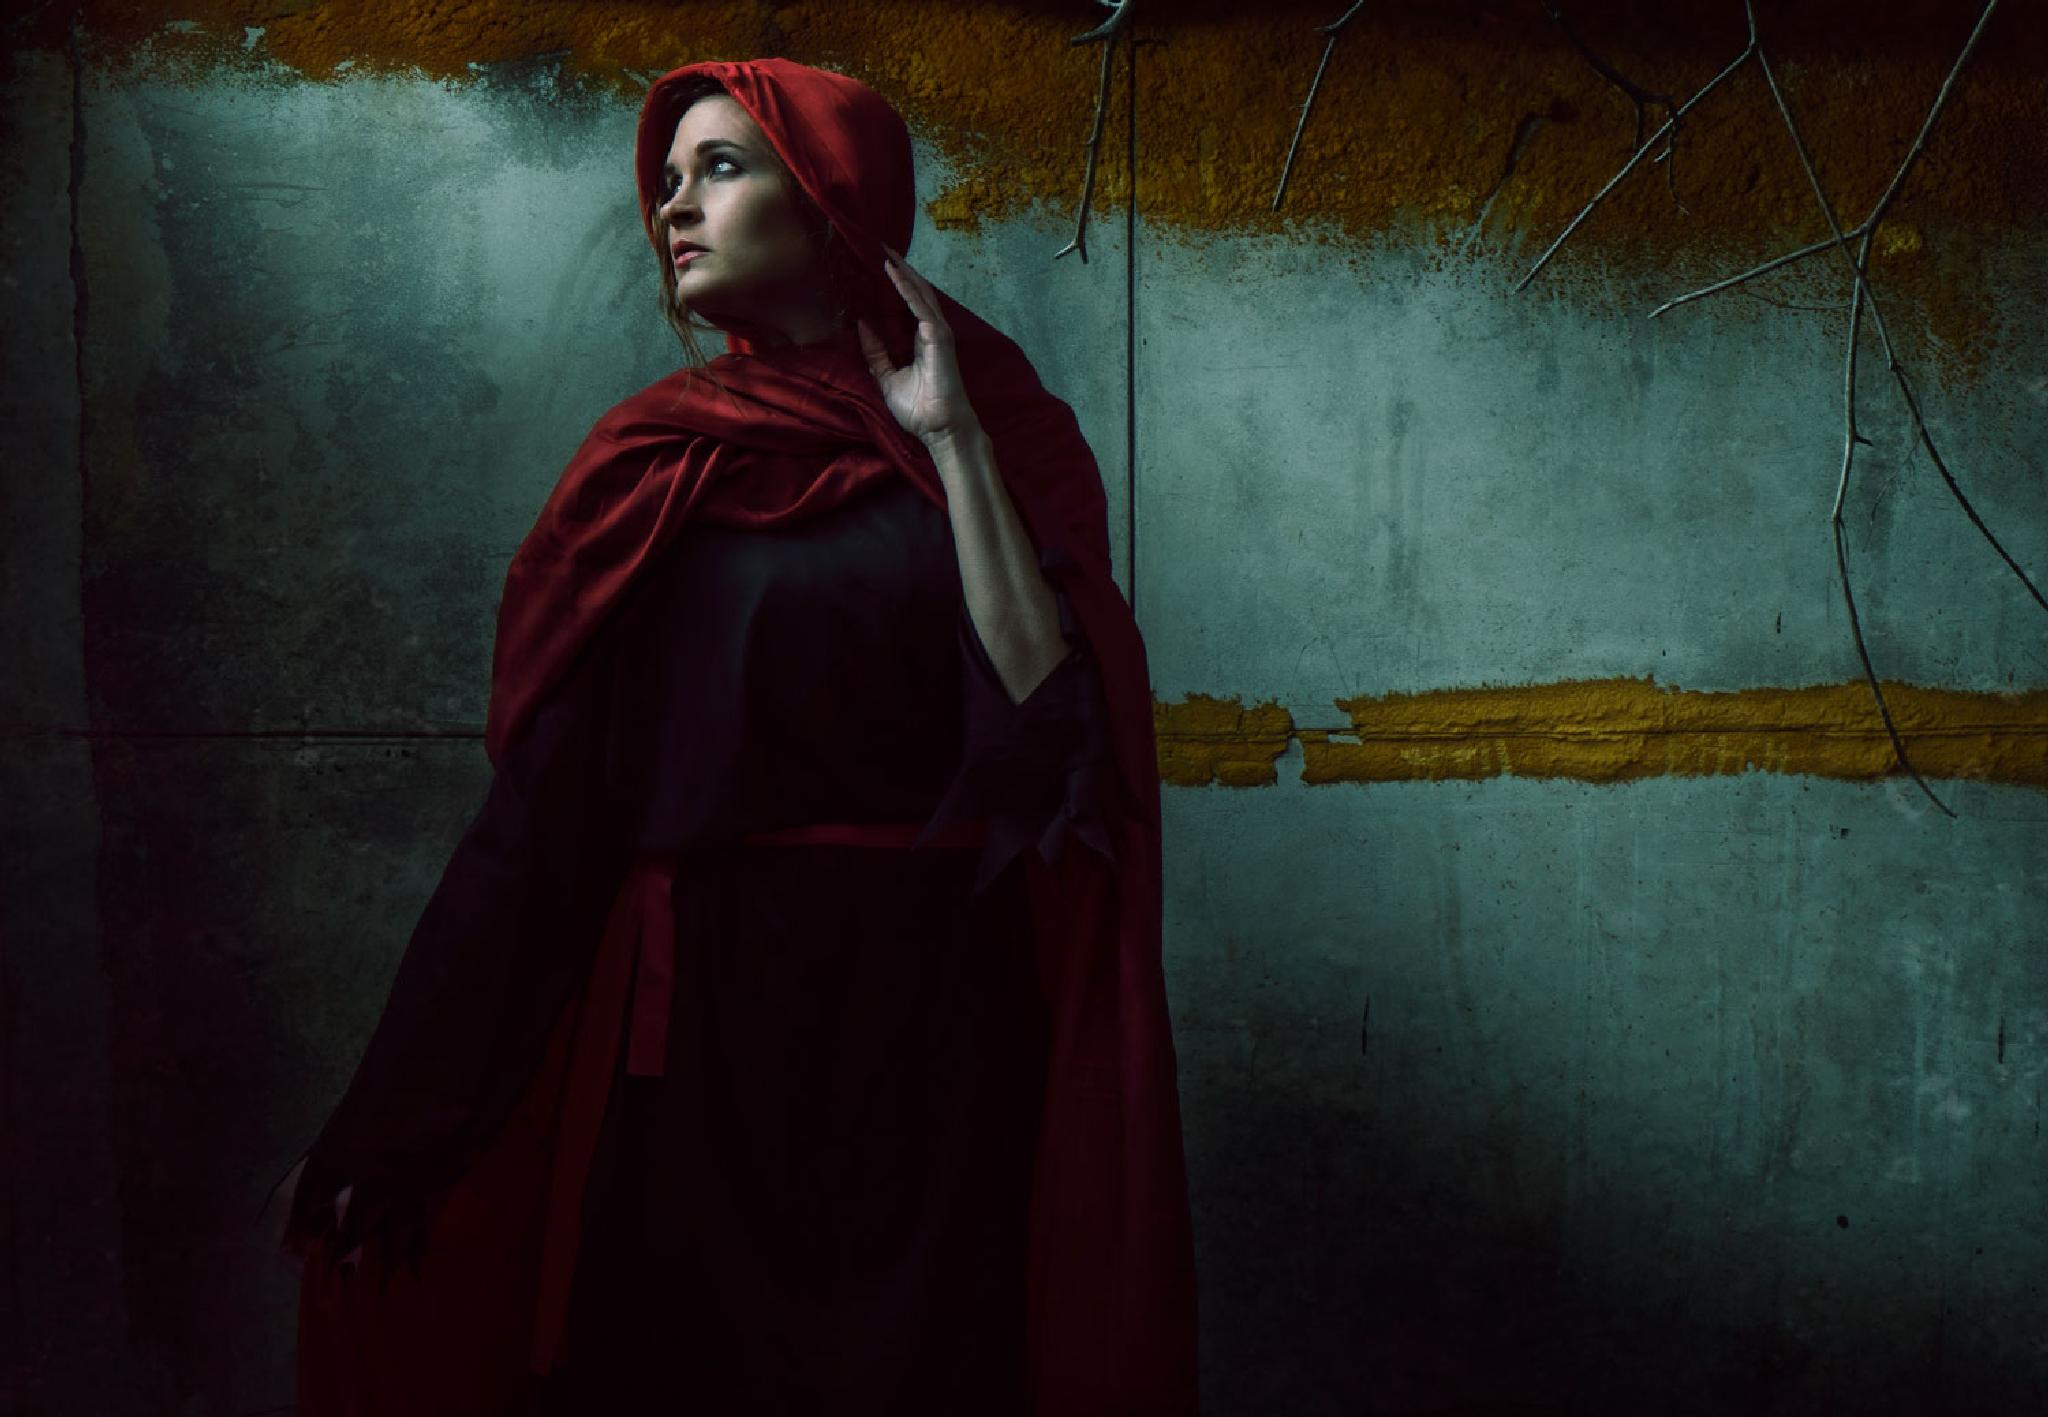 Red Riding Hood by timskipperphoto